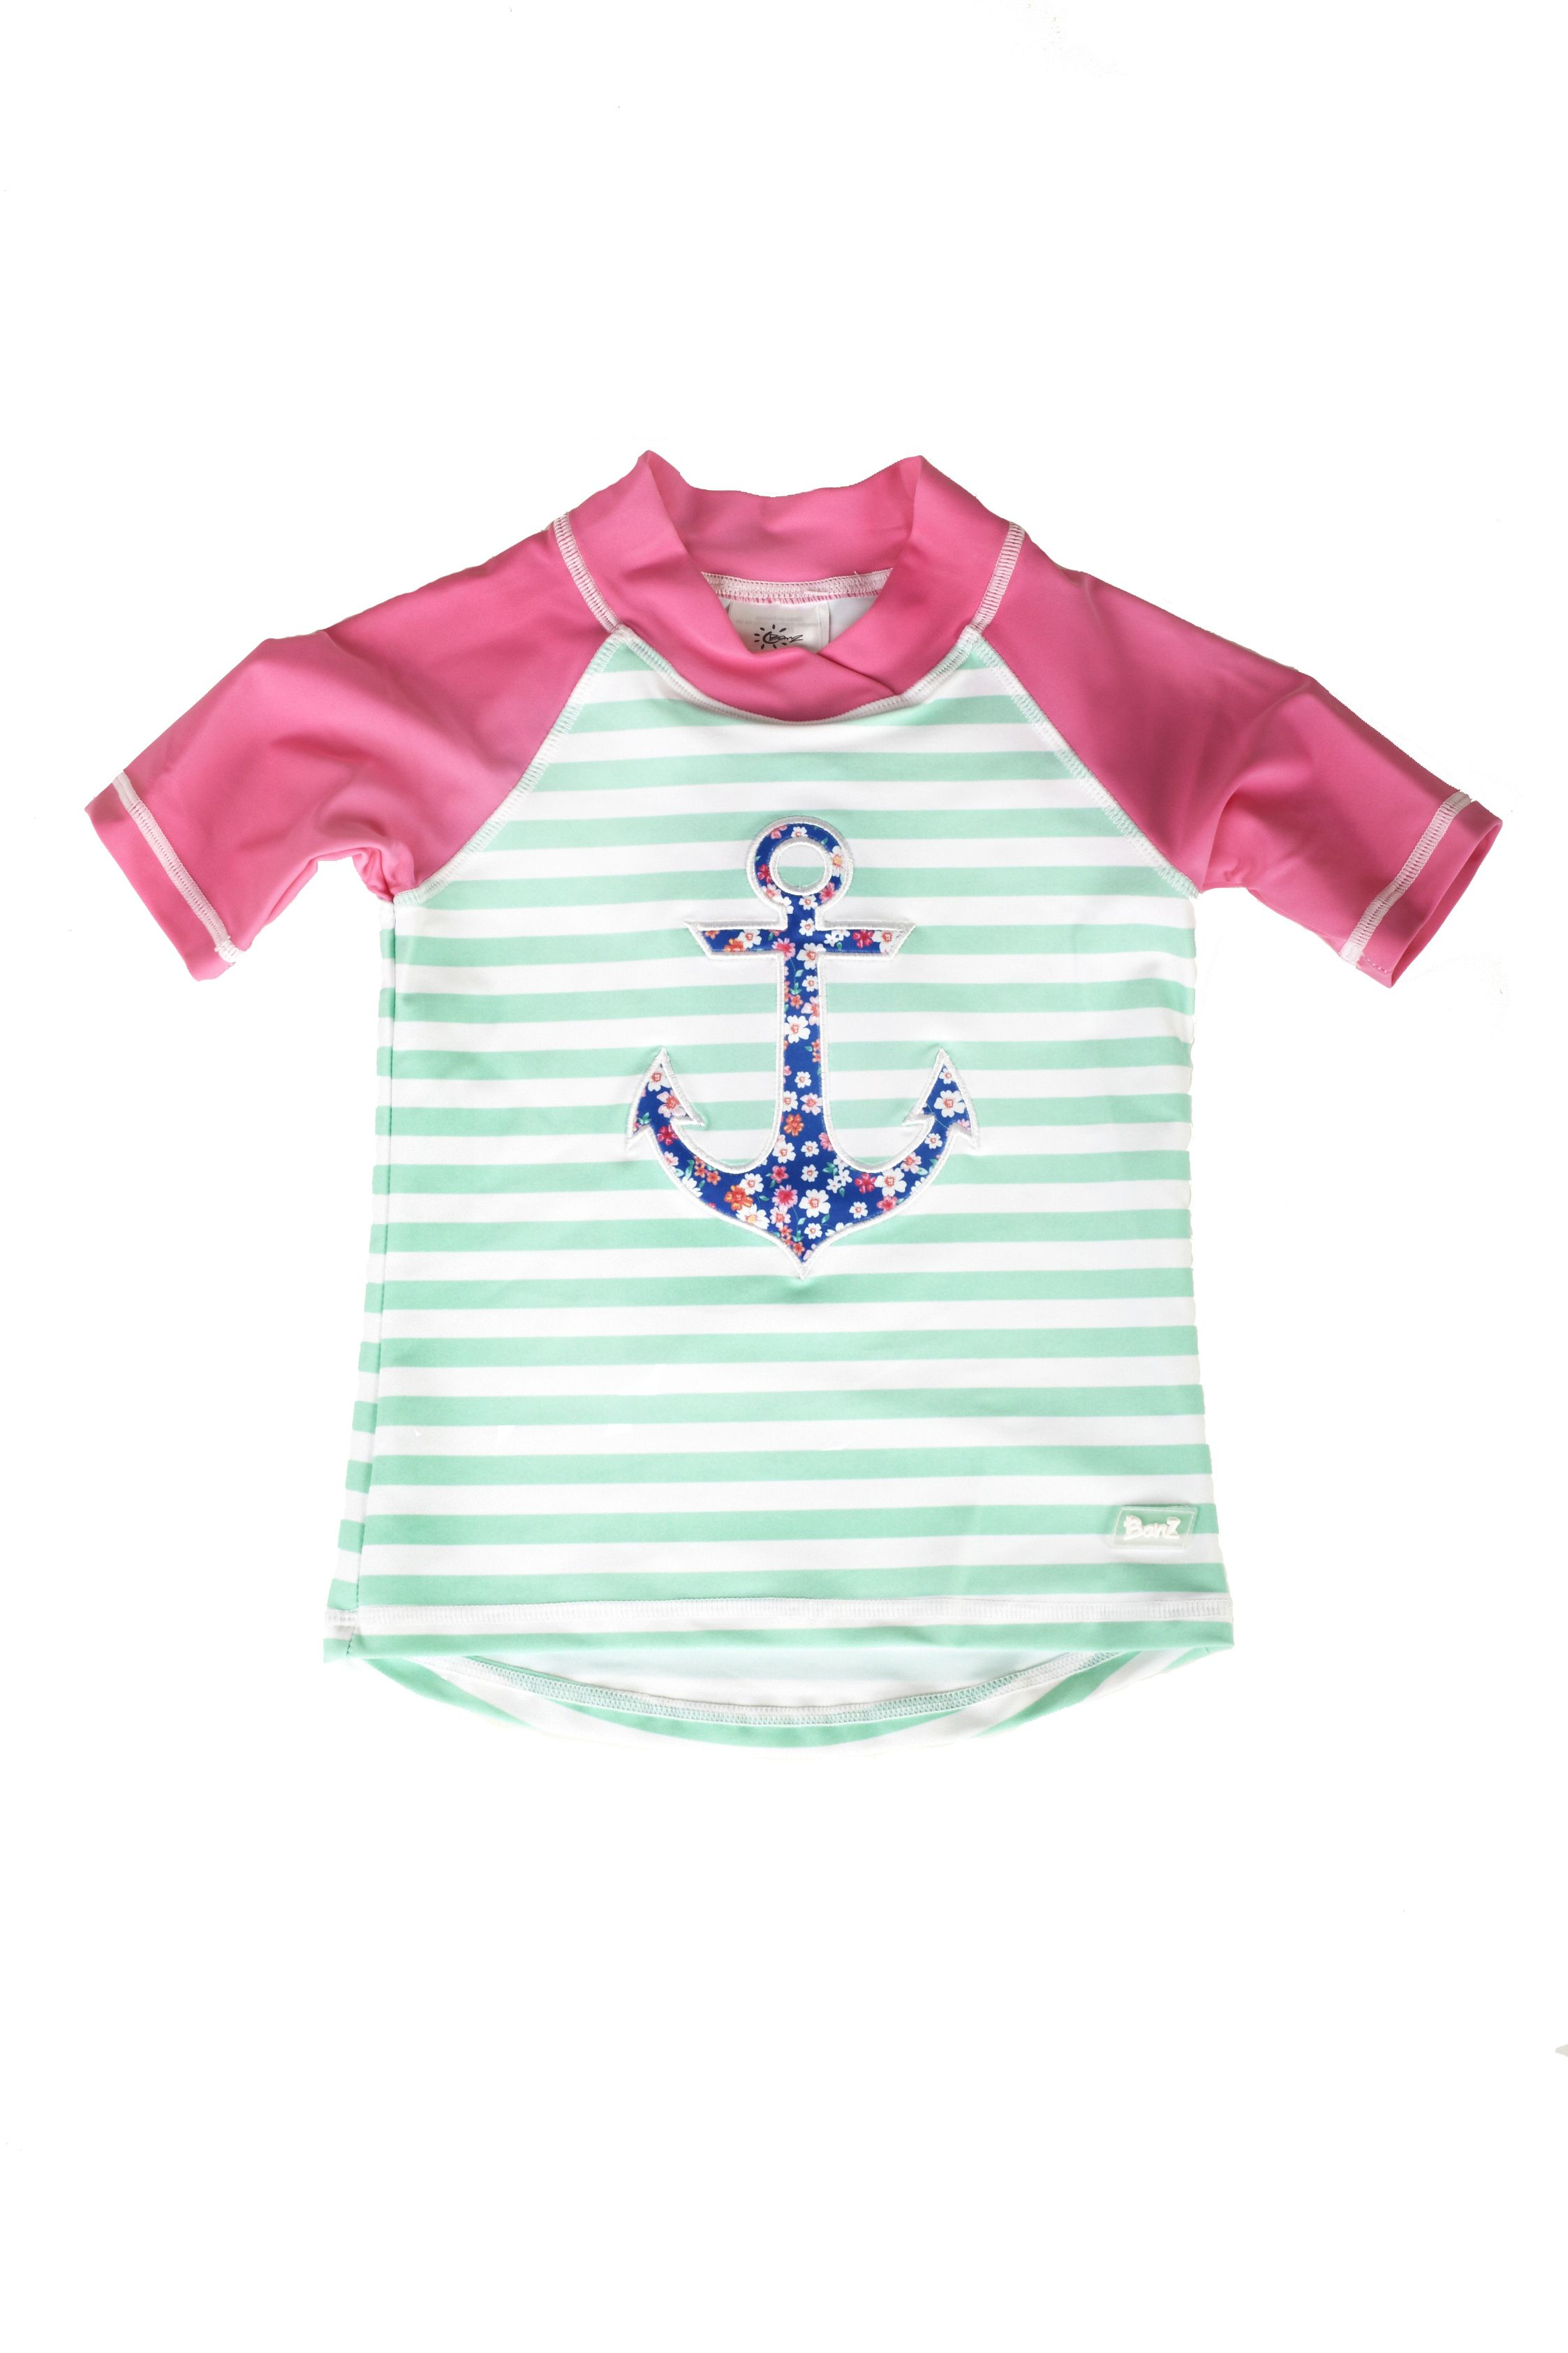 c19093e7d1 Banz Anchor Short Sleeve Rash Shirt Banz 2018 swimwear range for boys and  girls aged 3 months to 6 years. Designed in Australia and manufactured  using fast ...